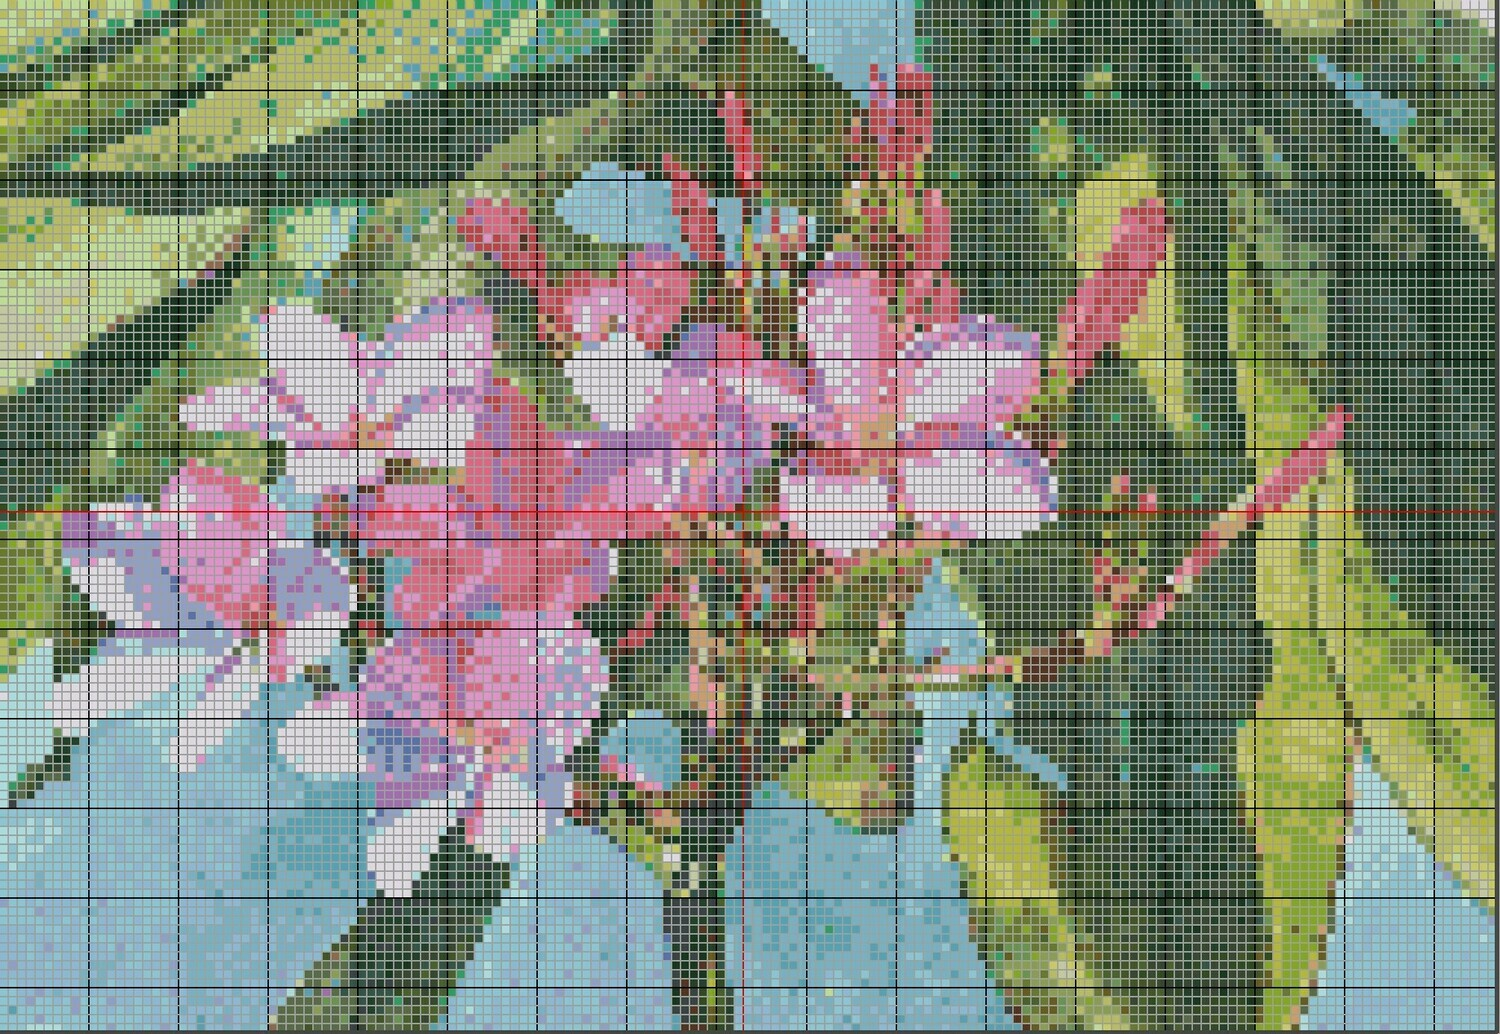 Beautiful Floral Cross Stitch - Pink Plumeria Frangipani Tropical Flowers - Pattern Only - Instant Digital Download